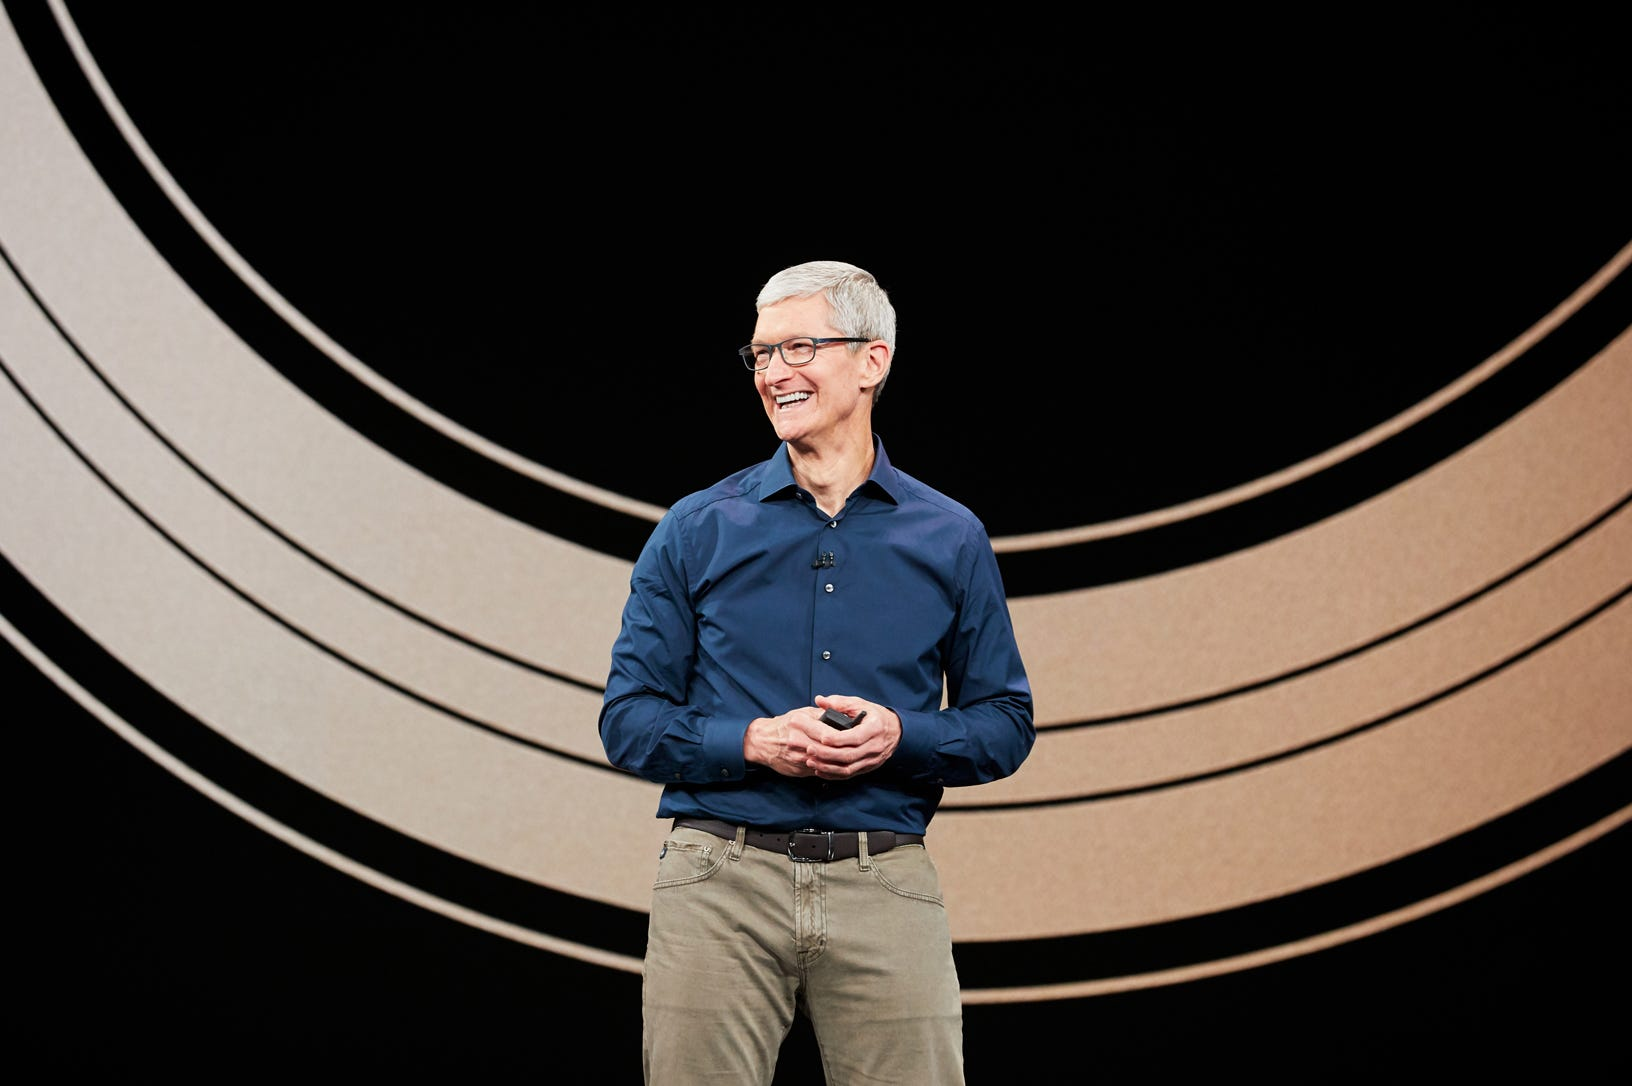 New iPhone lineup, Apple Watch and TV+ update at event in Cupertino